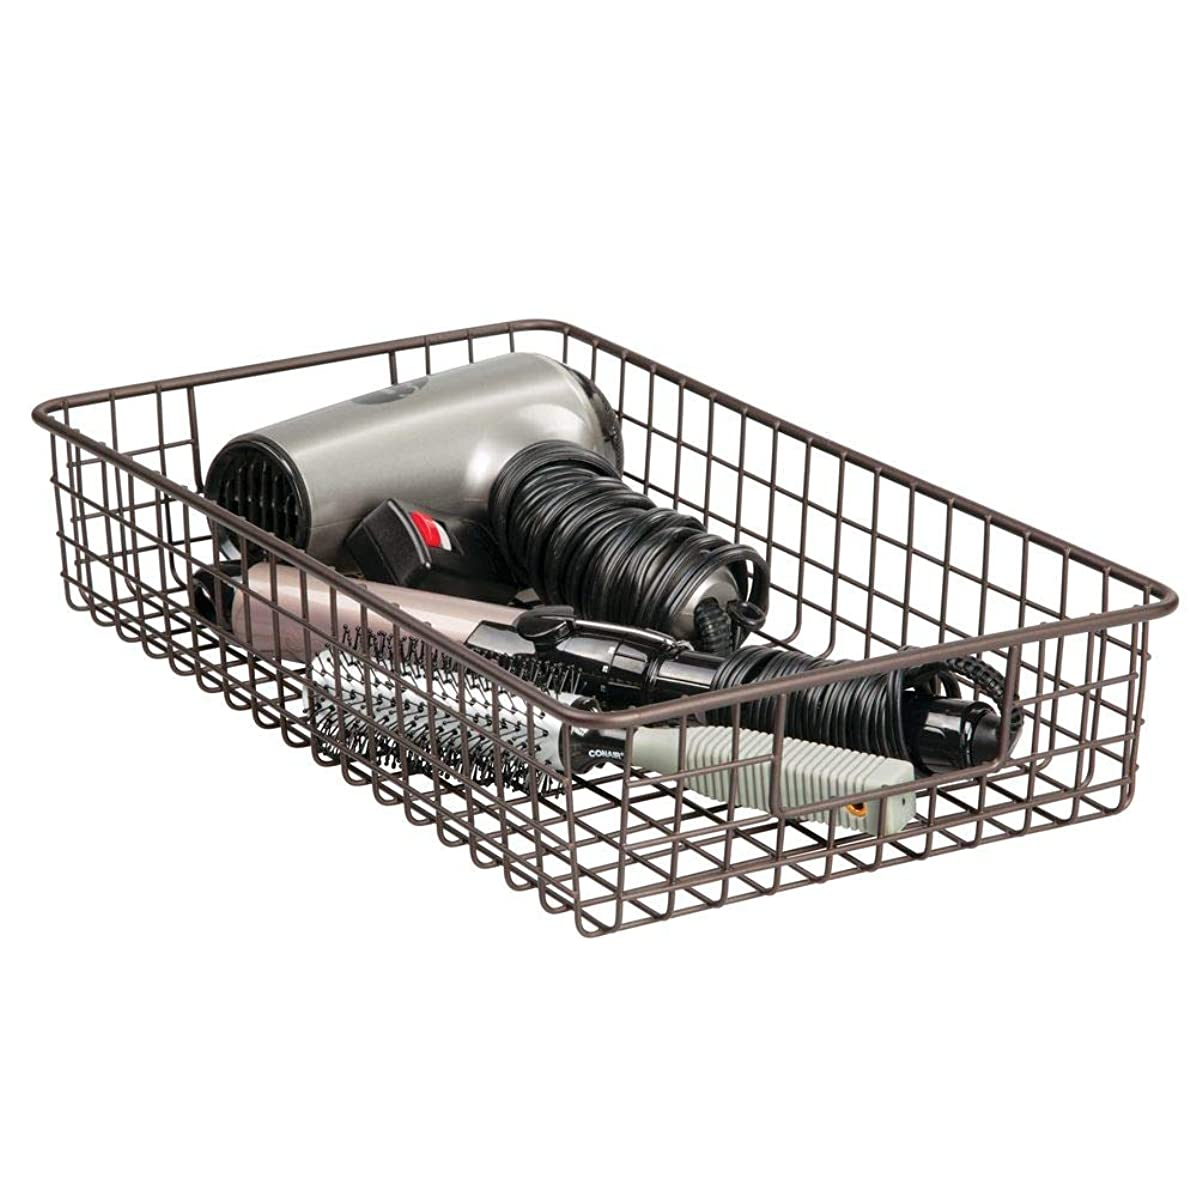 mDesign Farmhouse Decorative Metal Wire Bathroom Storage Organizer Bin Basket Holder Tray - for Cabinets, Shelves, Closets, Countertops, Bedrooms, Kitchens, Garage, Laundry - 16